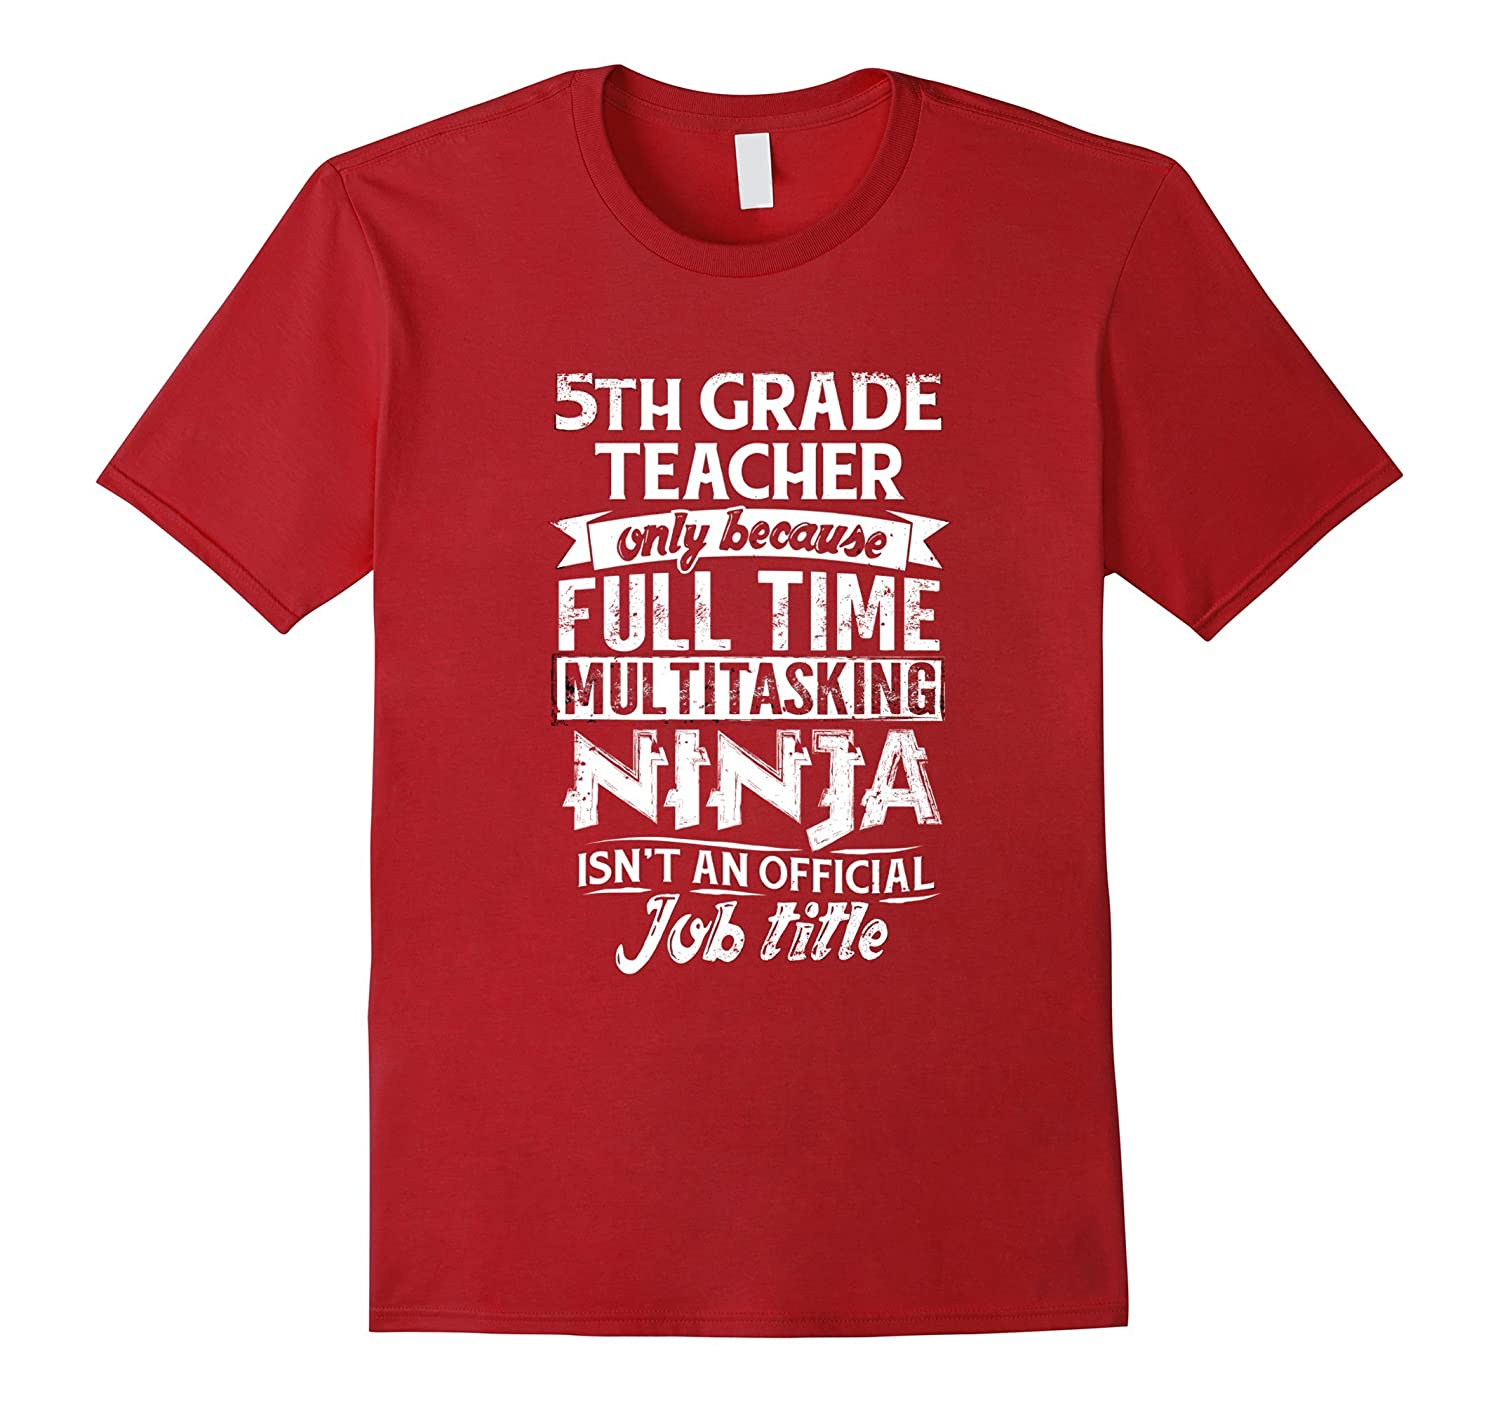 5th Grade Teacher Not An Actual Job Title Funny T-Shirt-TJ